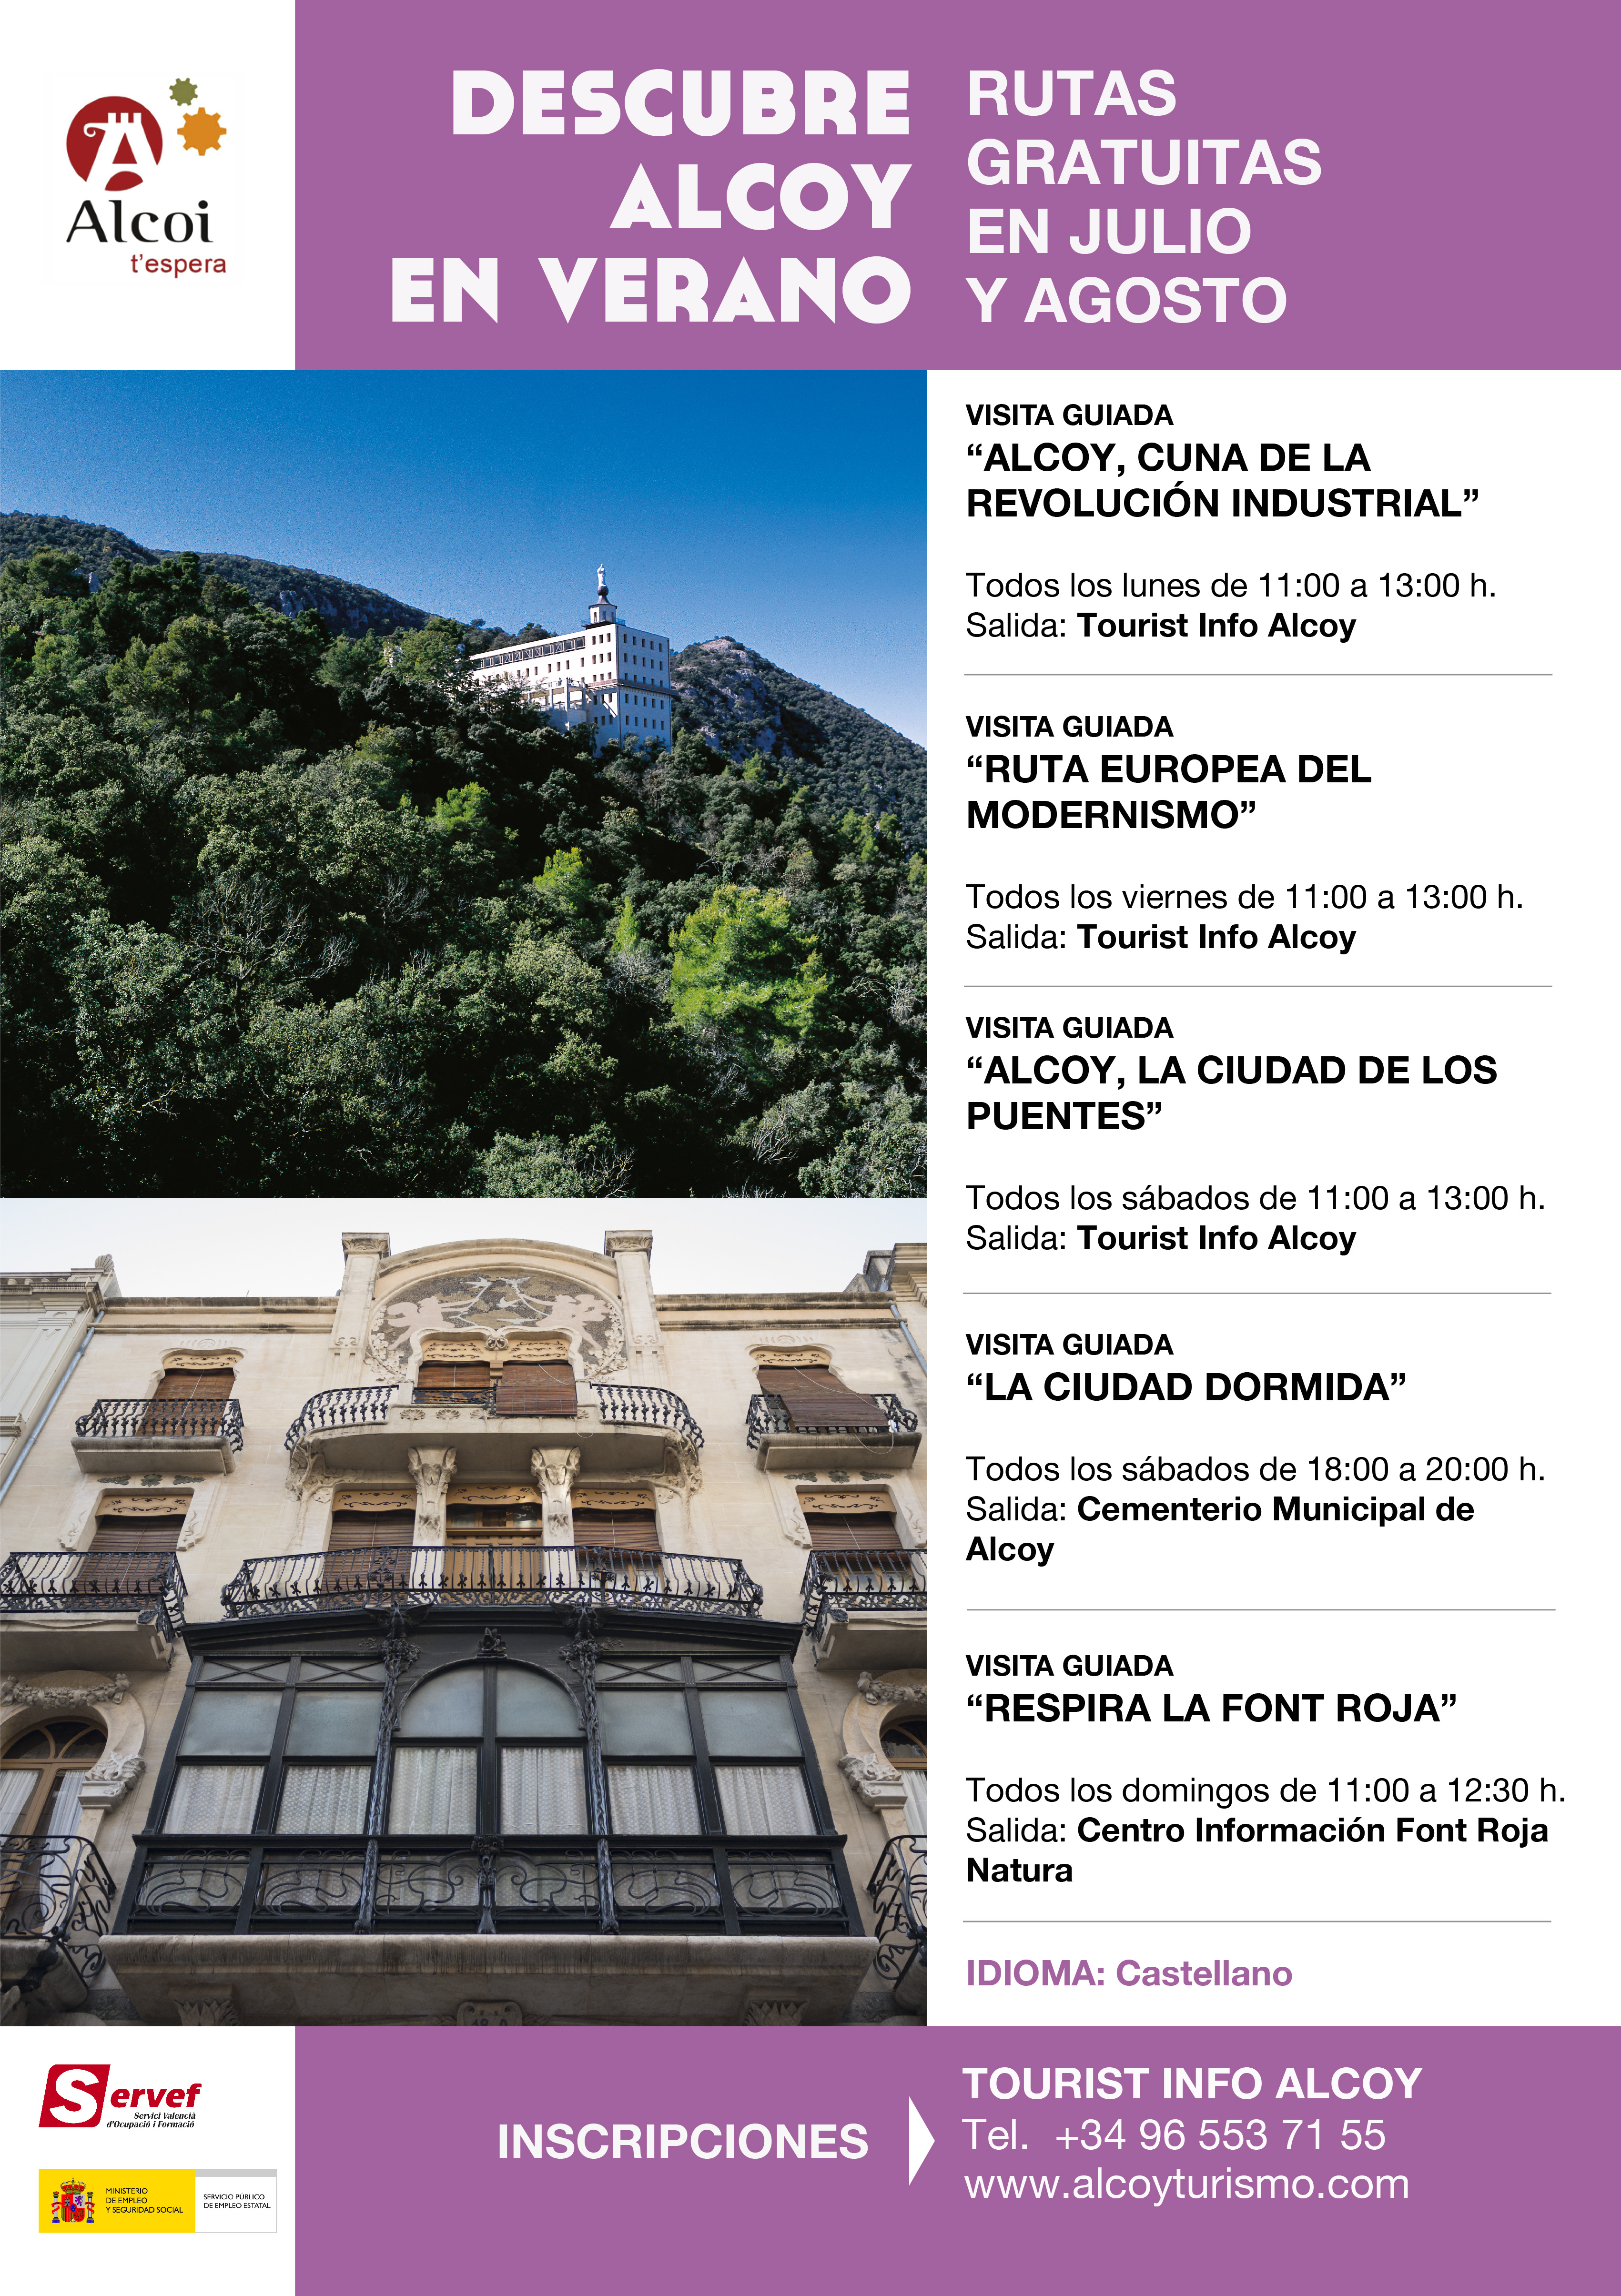 Hotel reconquista alcoy alicante inicio share the knownledge for Oficina turismo alcoy